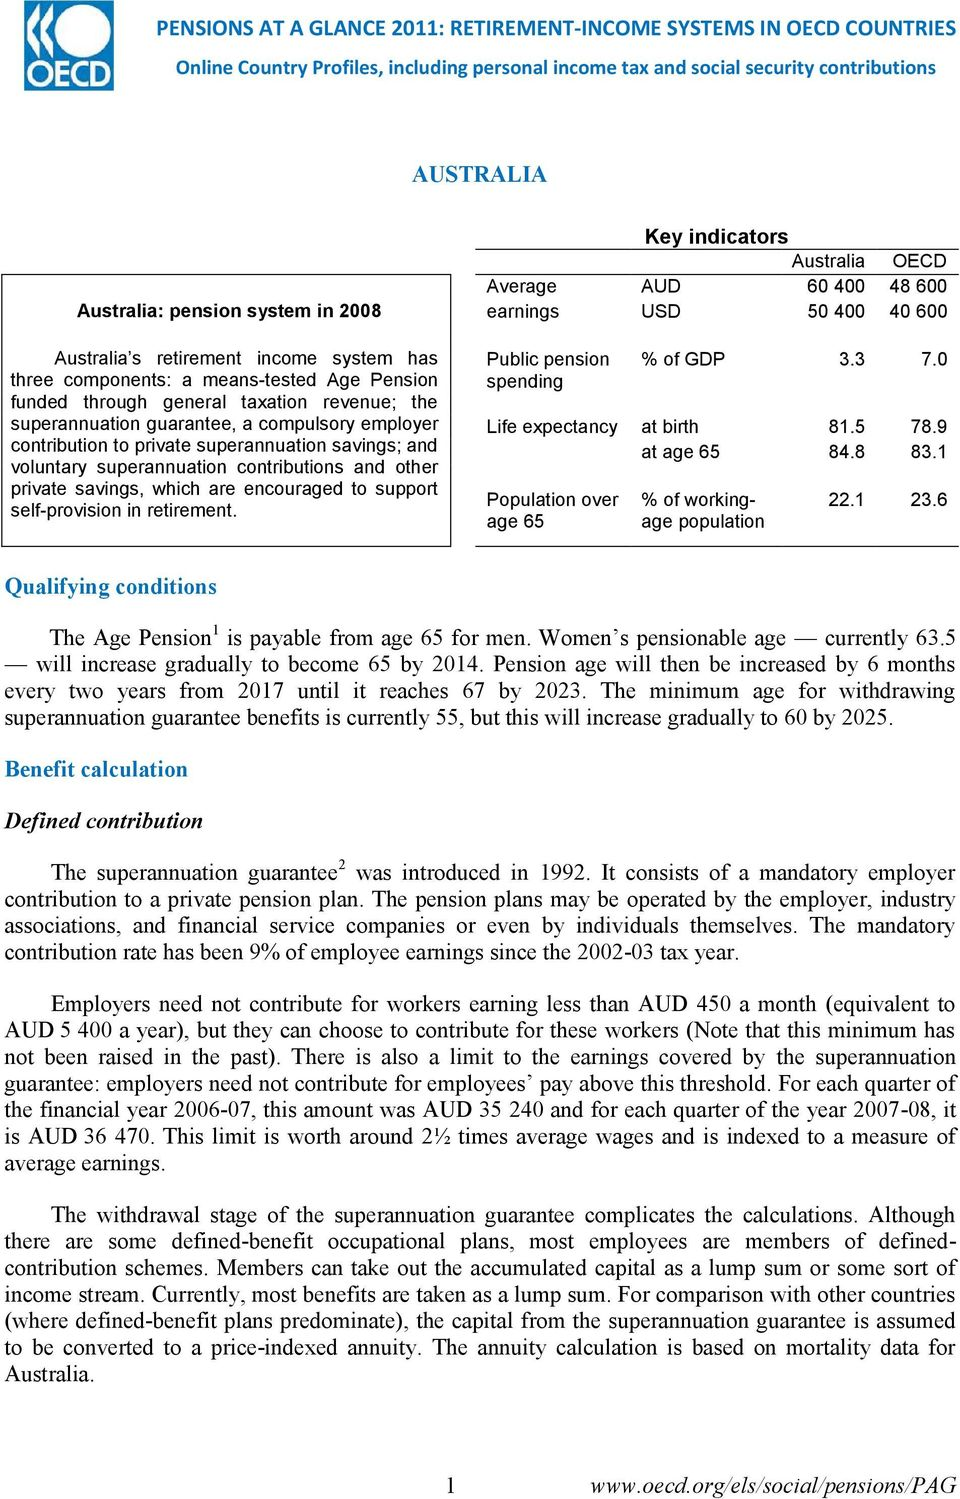 private superannuation savings; and voluntary superannuation contributions and other private savings, which are encouraged to support self-provision in retirement.